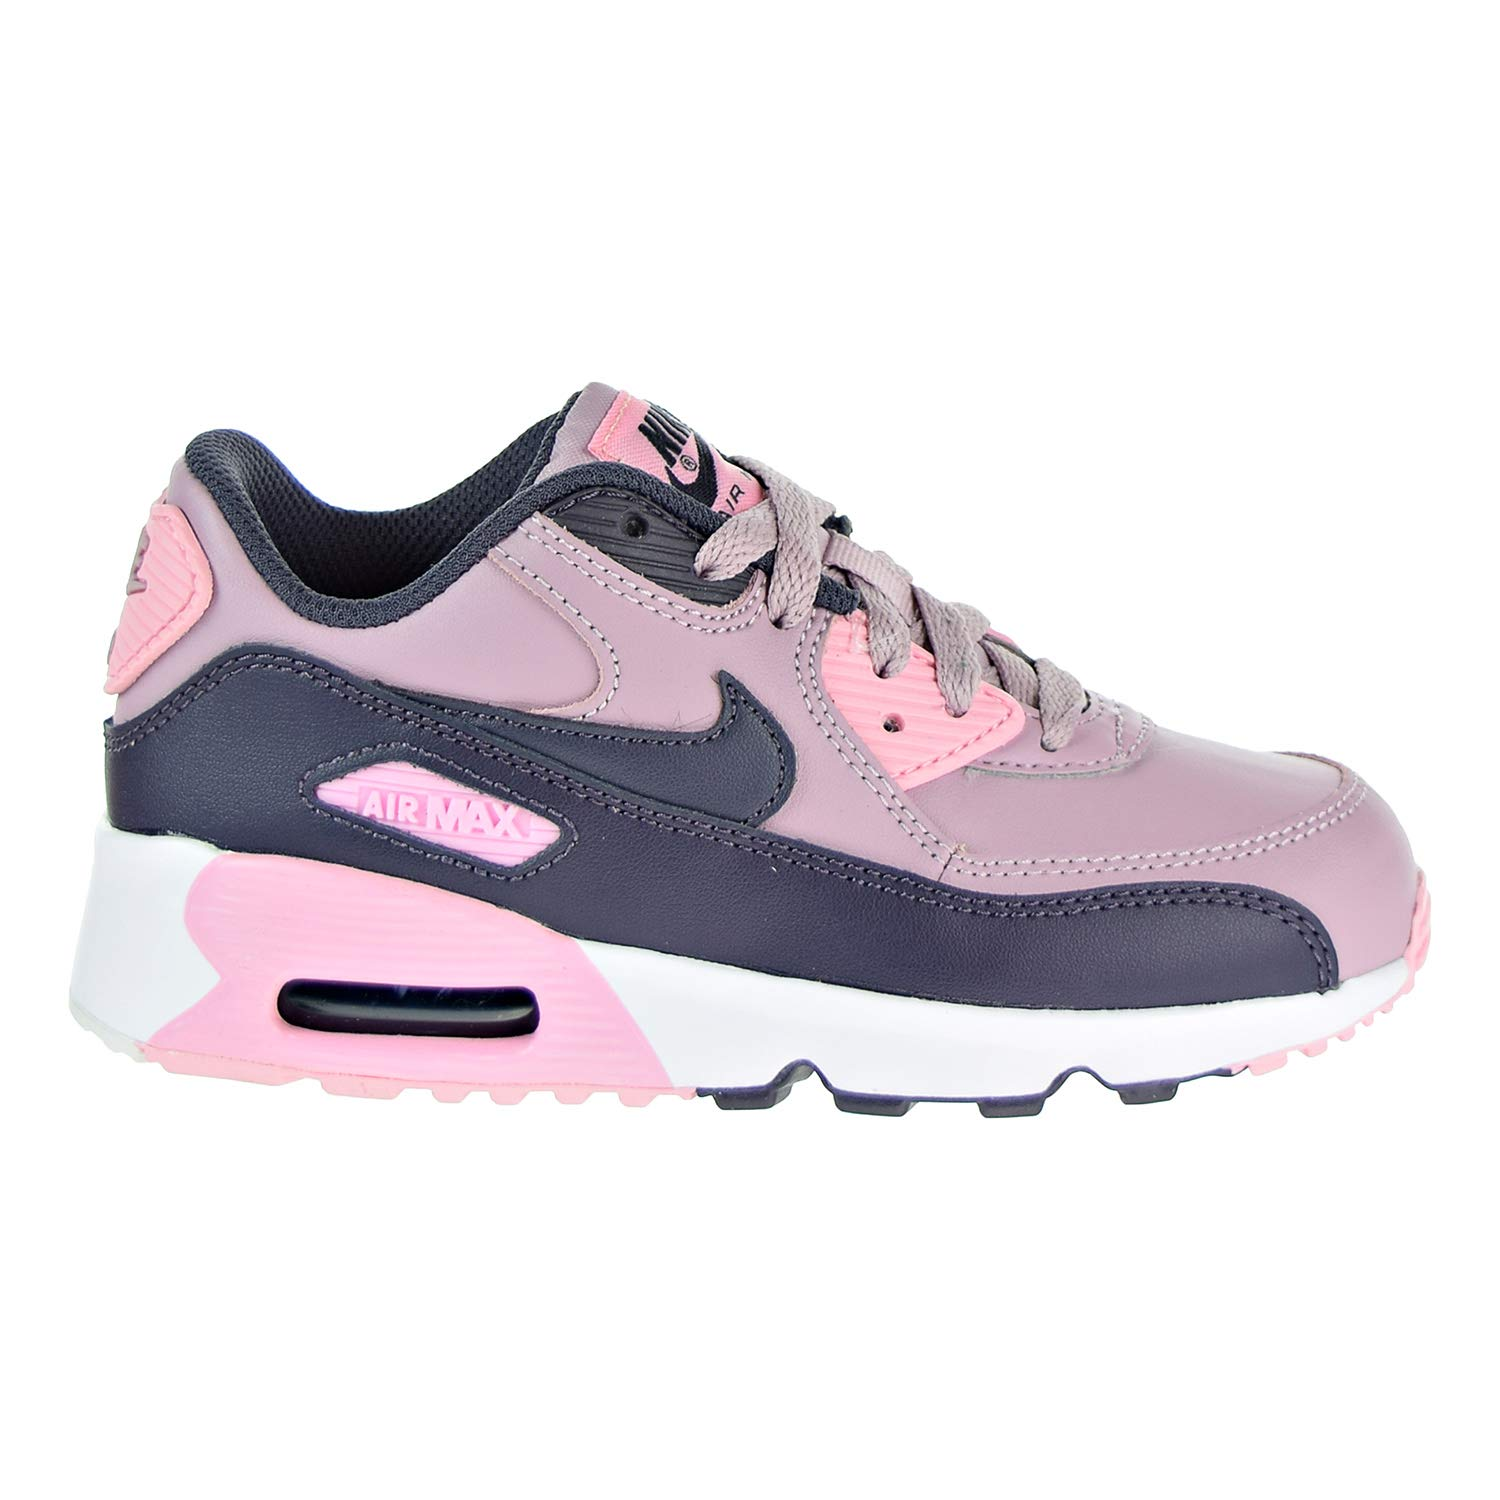 NIKE Air Max 90 LTR (PS), Chaussures de Running (Elemental Compétition Fille 31.5 EU|Multicolore (Elemental Running Rose/Gridiron/Pink/White 602) 8b3cca